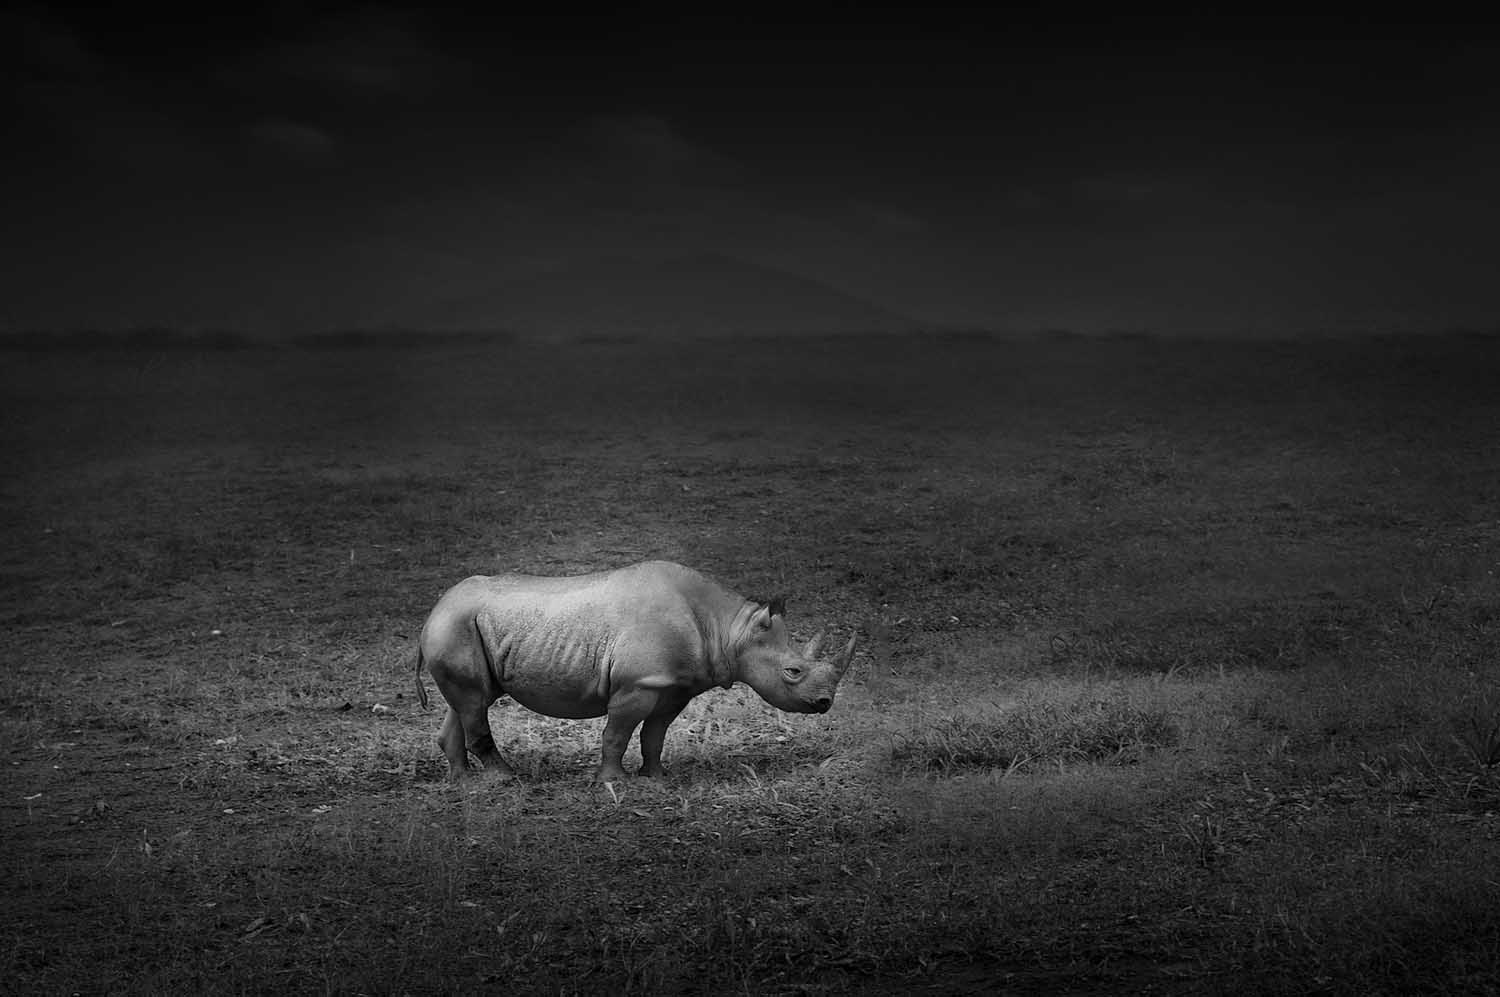 Dennis ramos usa commended open nature wildlife 2014 sony world photography awards